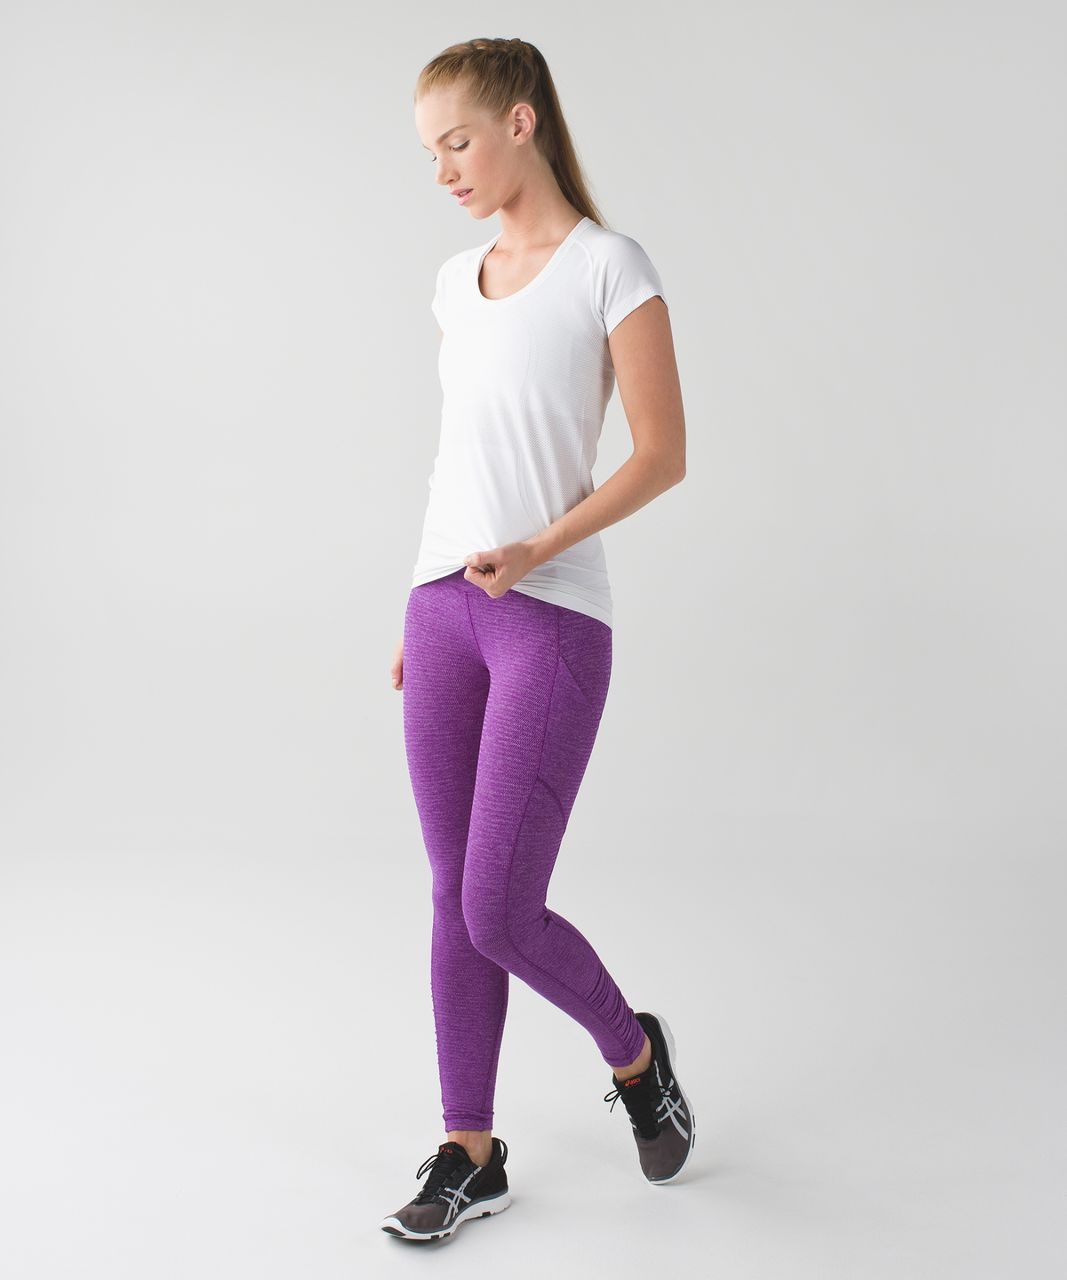 Lululemon Speed Tight IV *Rulu - Heathered Herringbone Heathered Tender Violet Black Grape